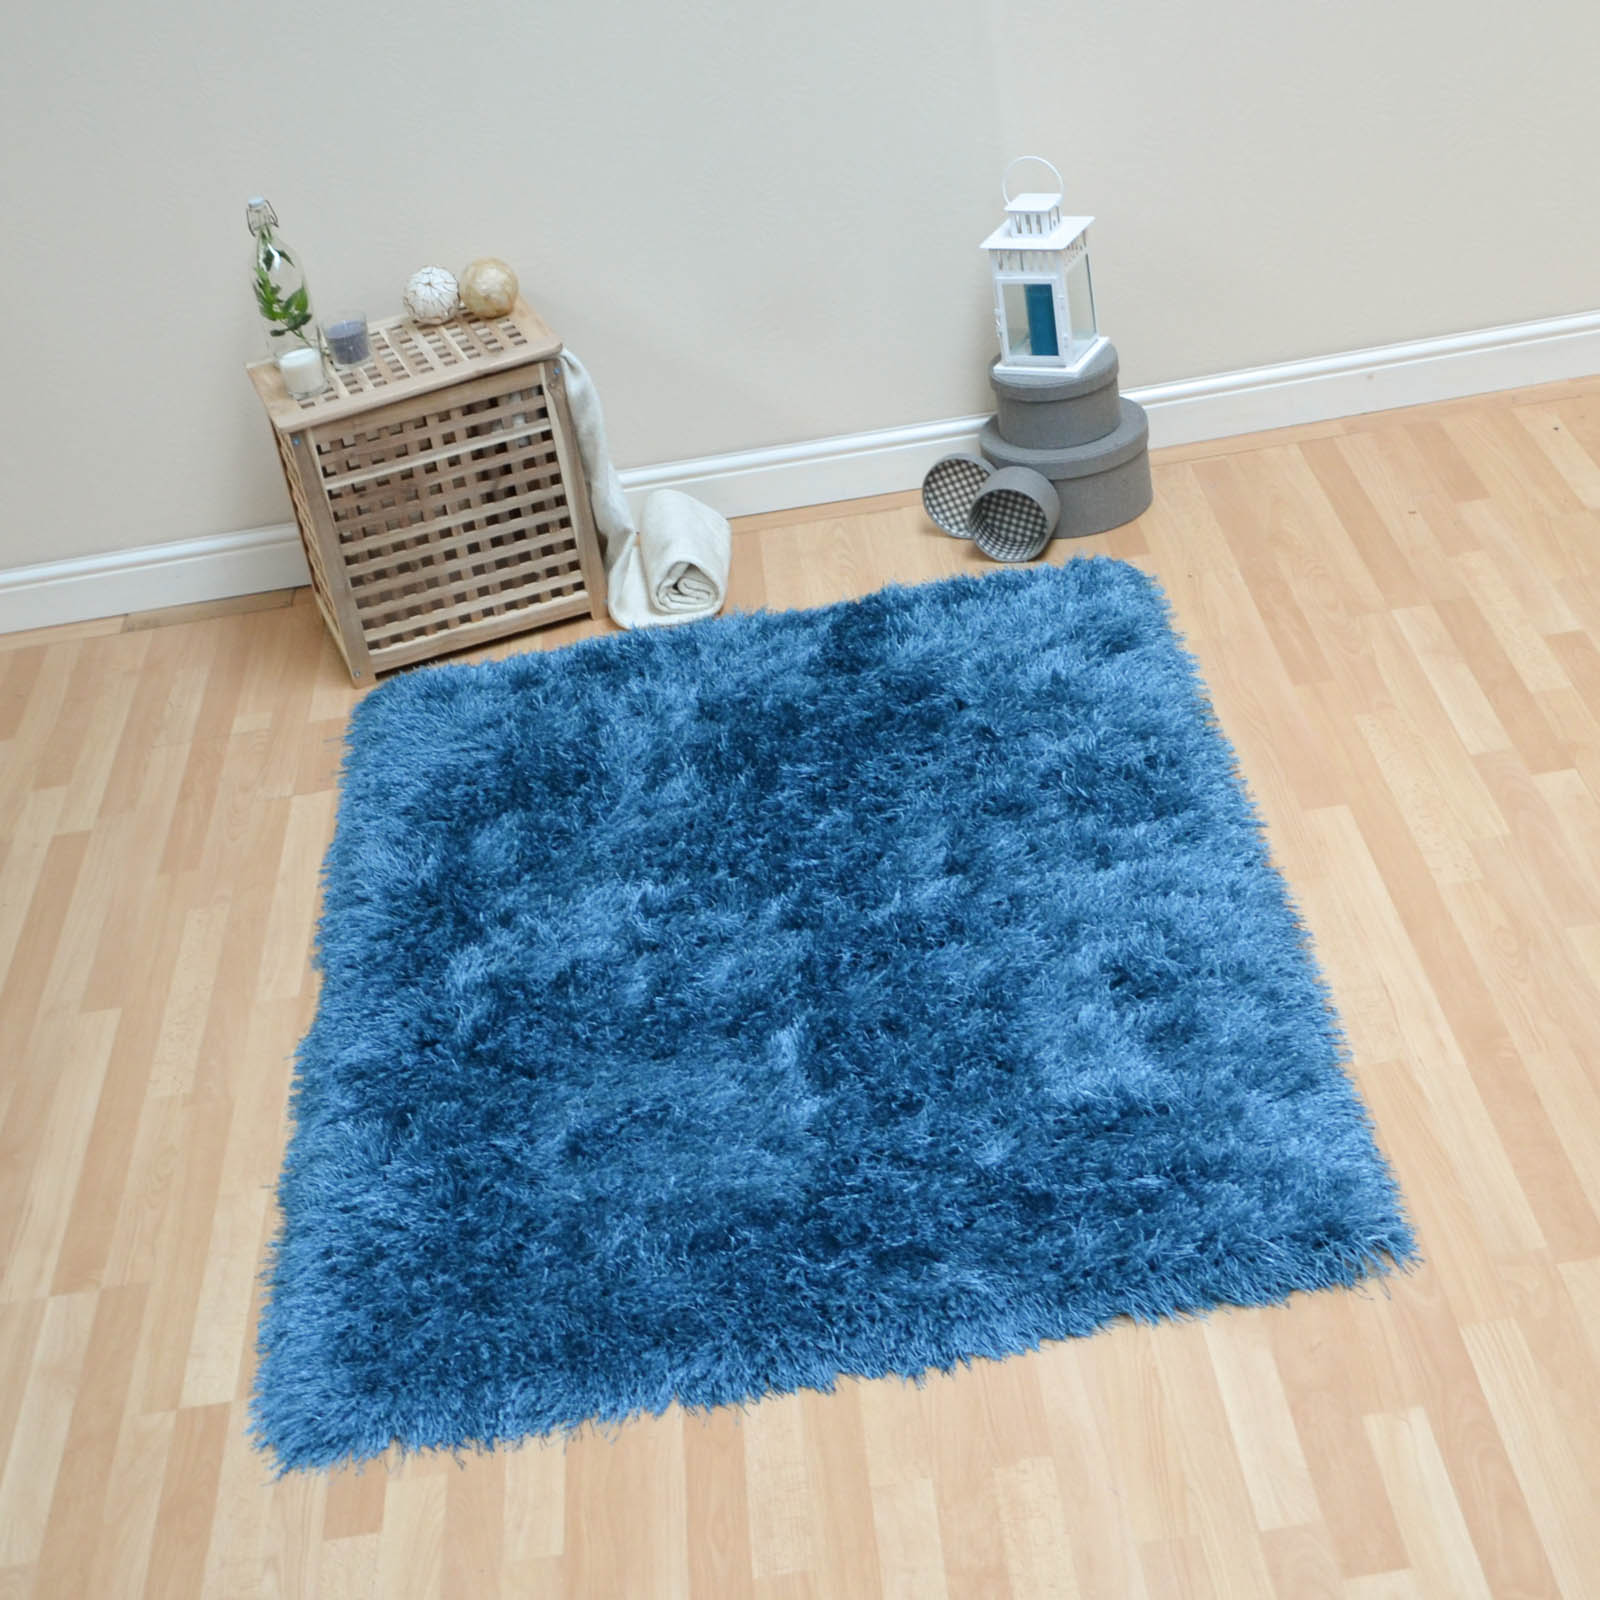 Monte Carlo Hand Made Shaggy Rugs in Blue